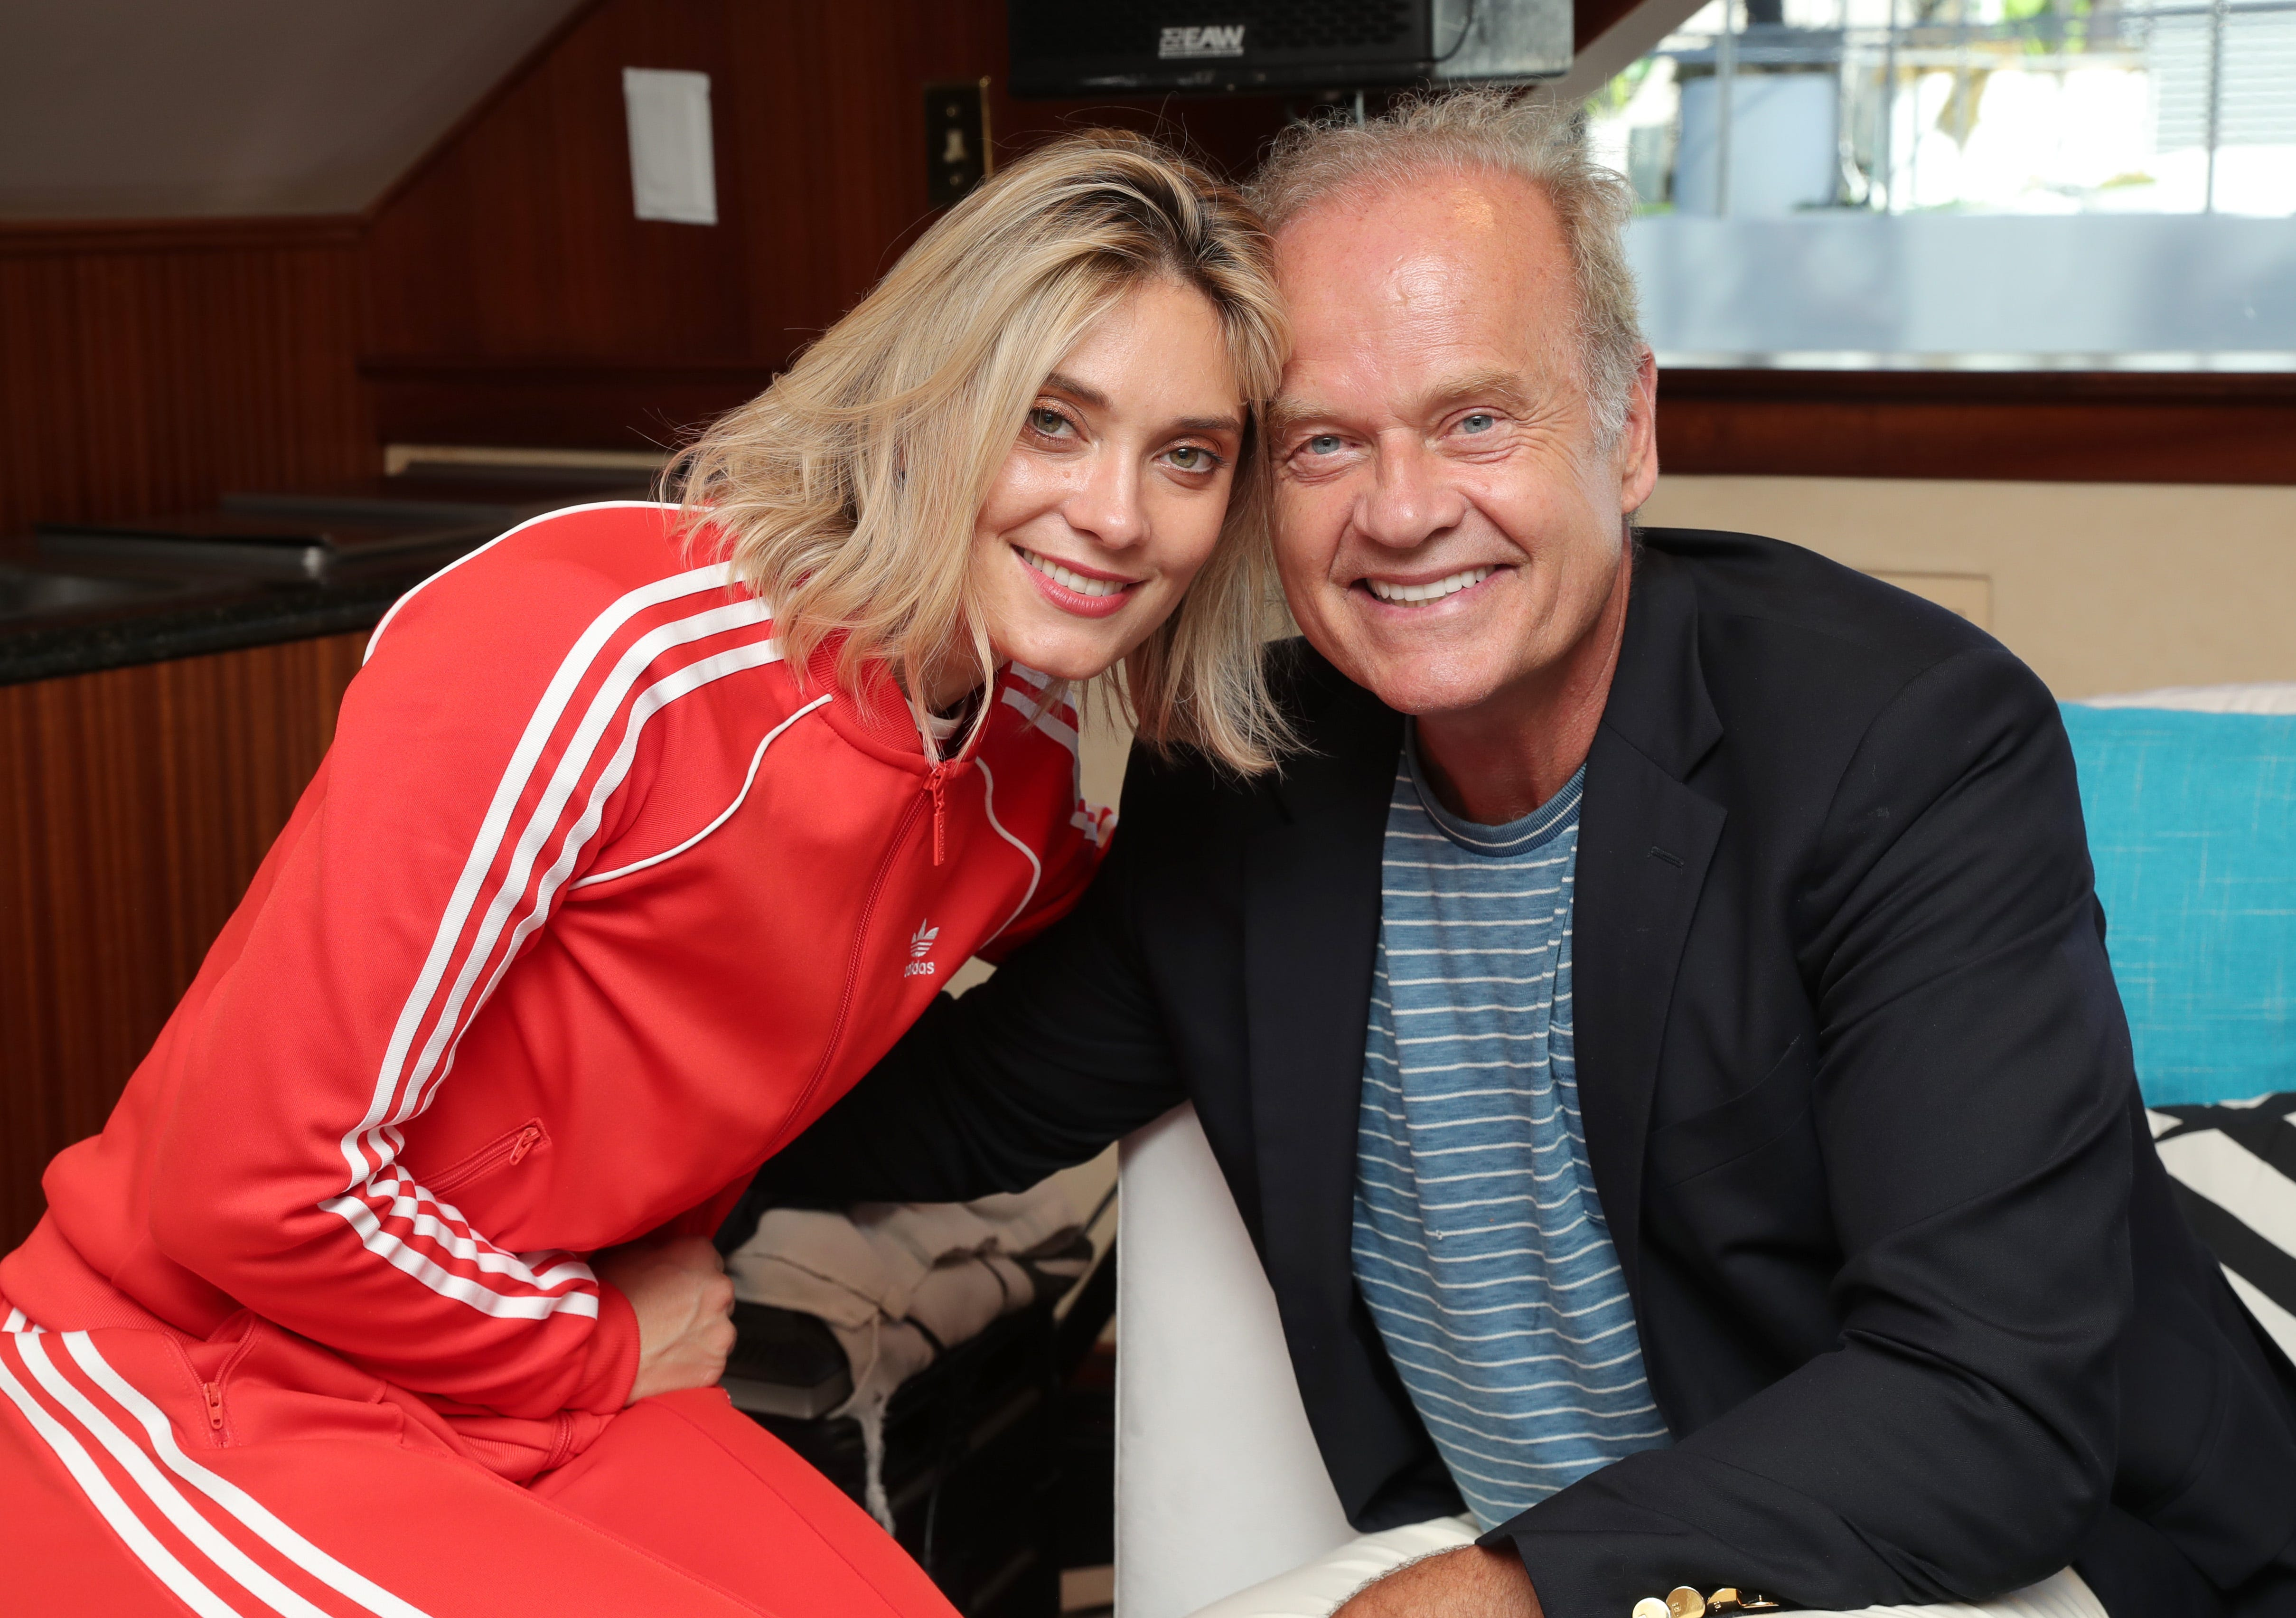 Kelsey Grammer s daughter Spencer stabbed in altercation, says she expects to recover quickly